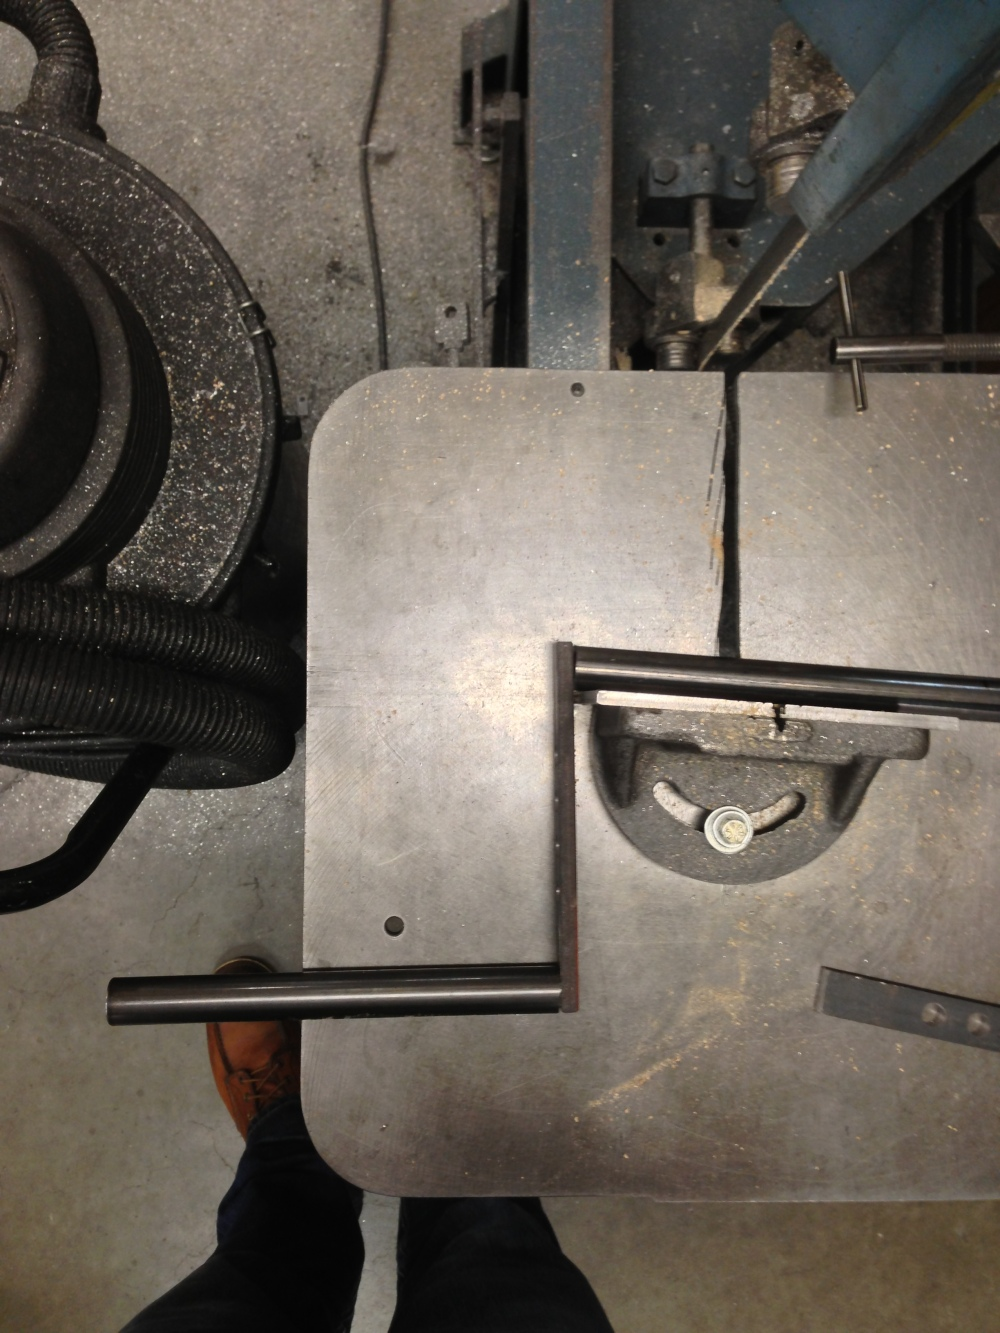 This band saw is a charm for cutting angles - you're looking at 5 degrees.